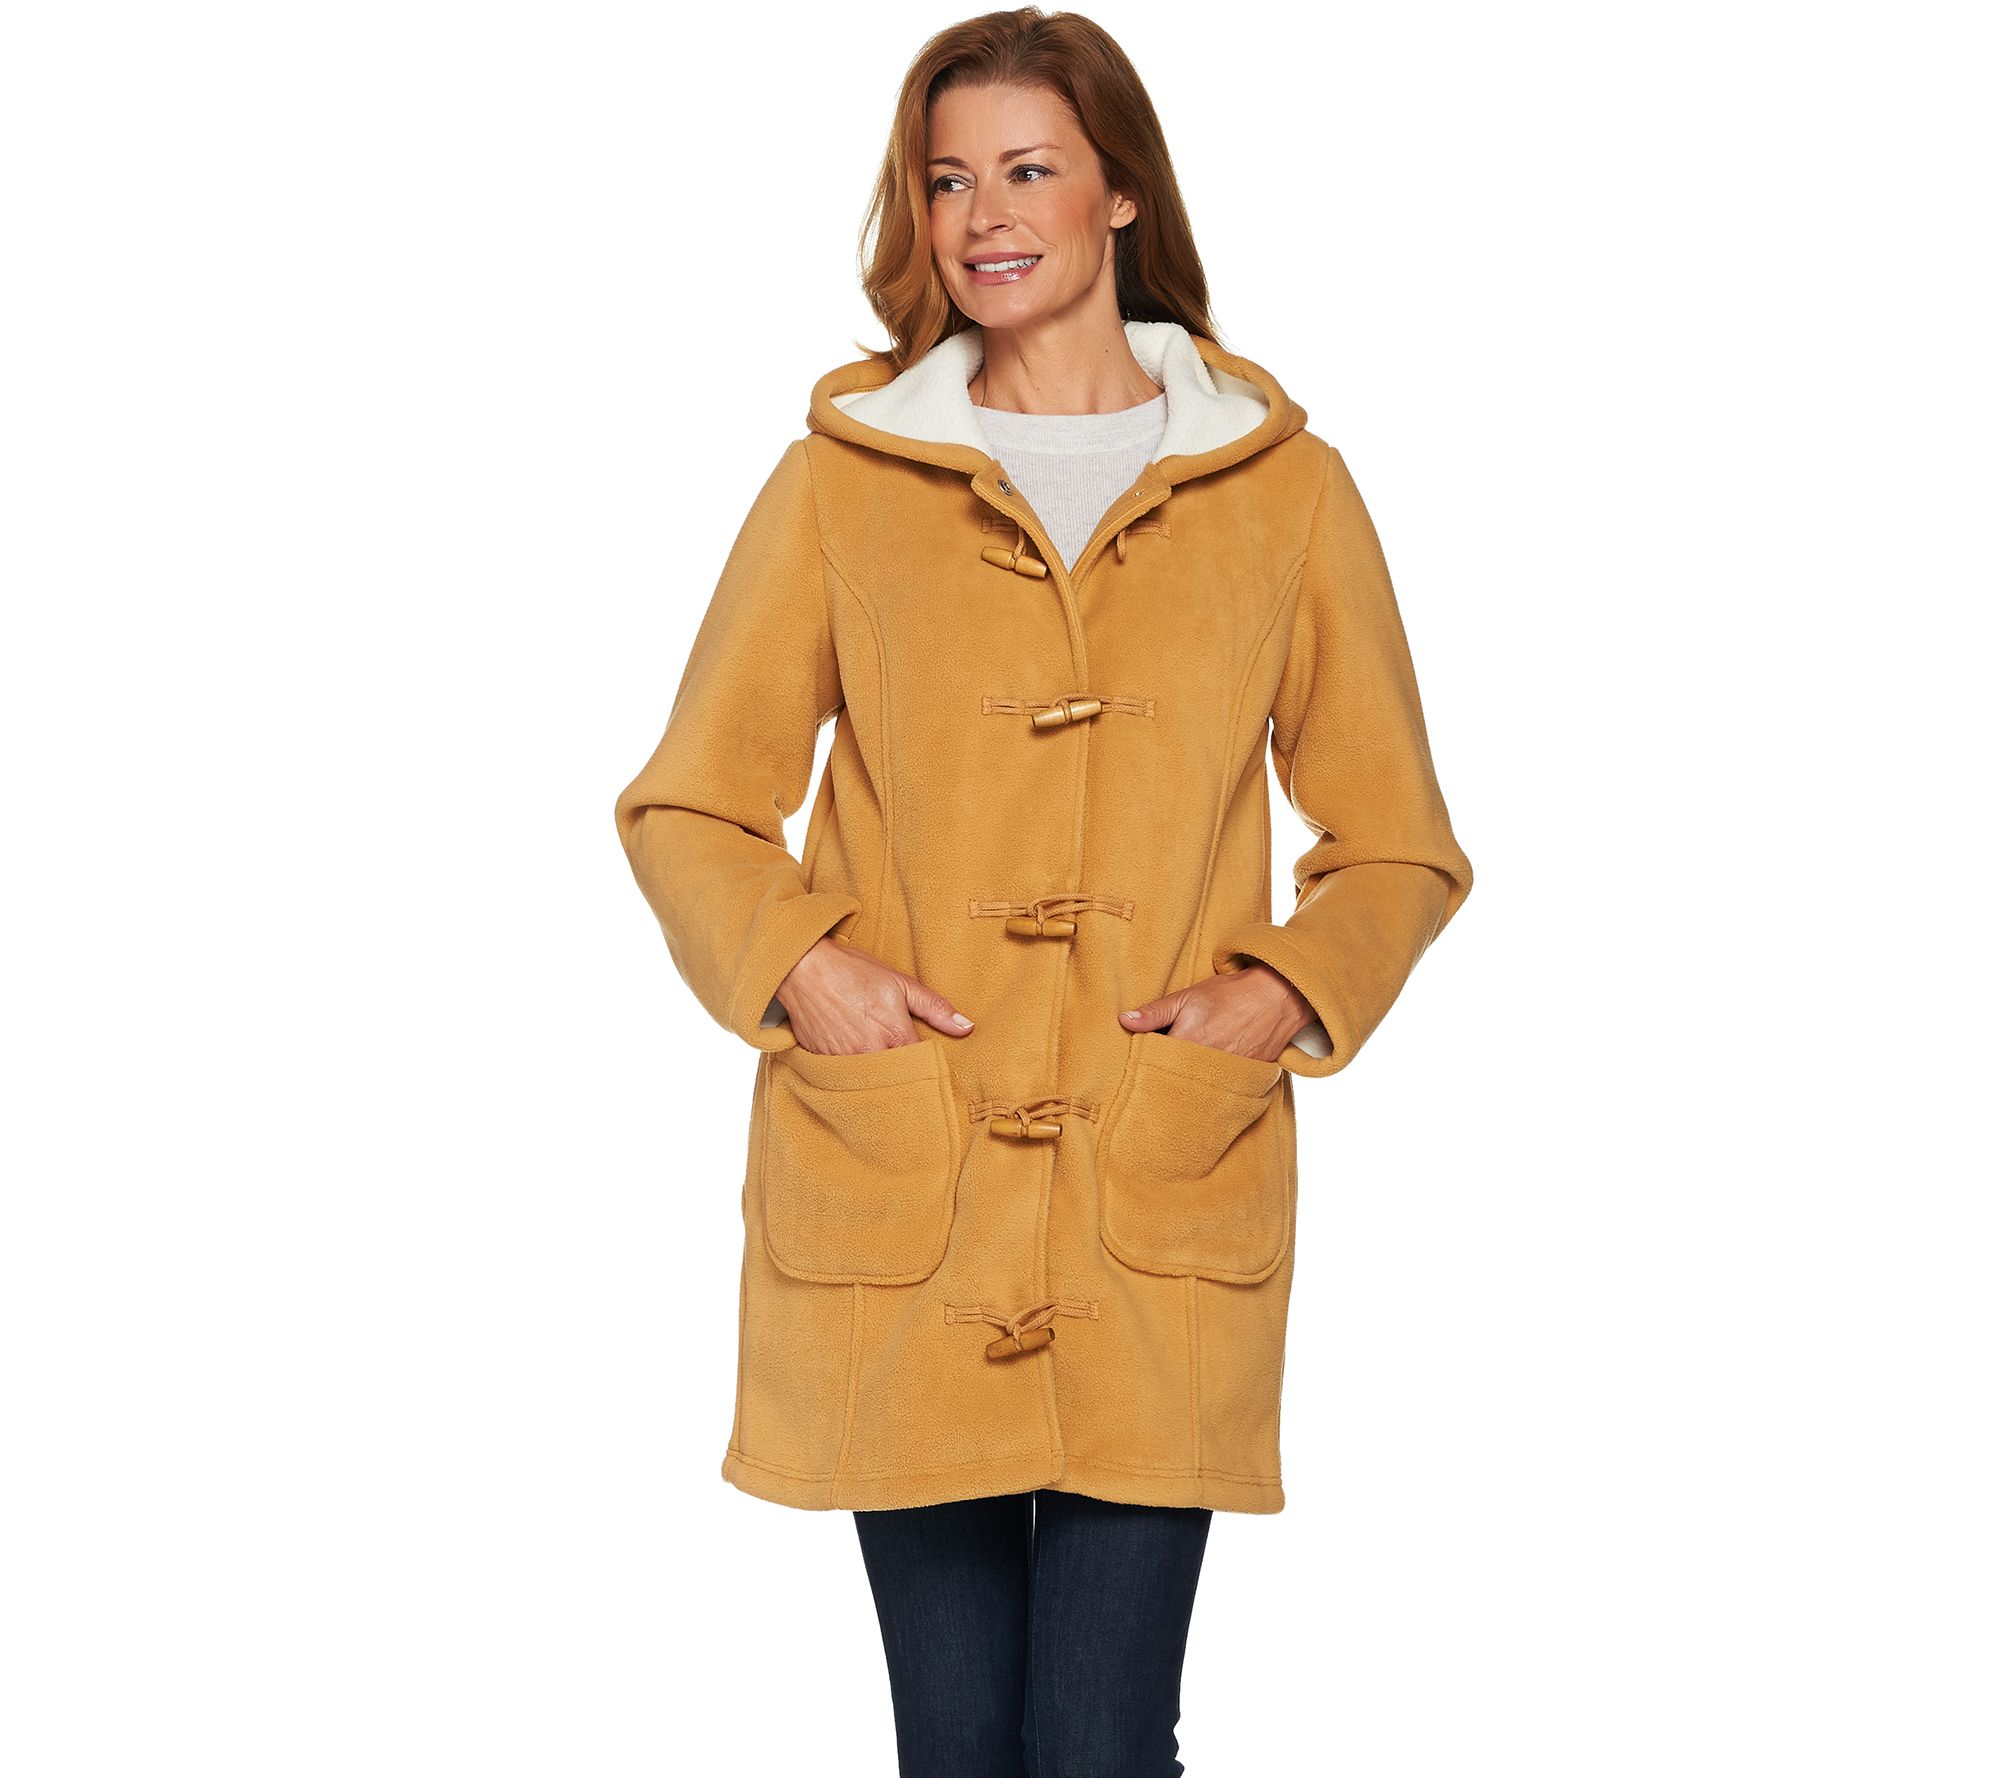 coat on quilted with drapes the shoulders vince patches drape pin jacket field hooded camuto cute